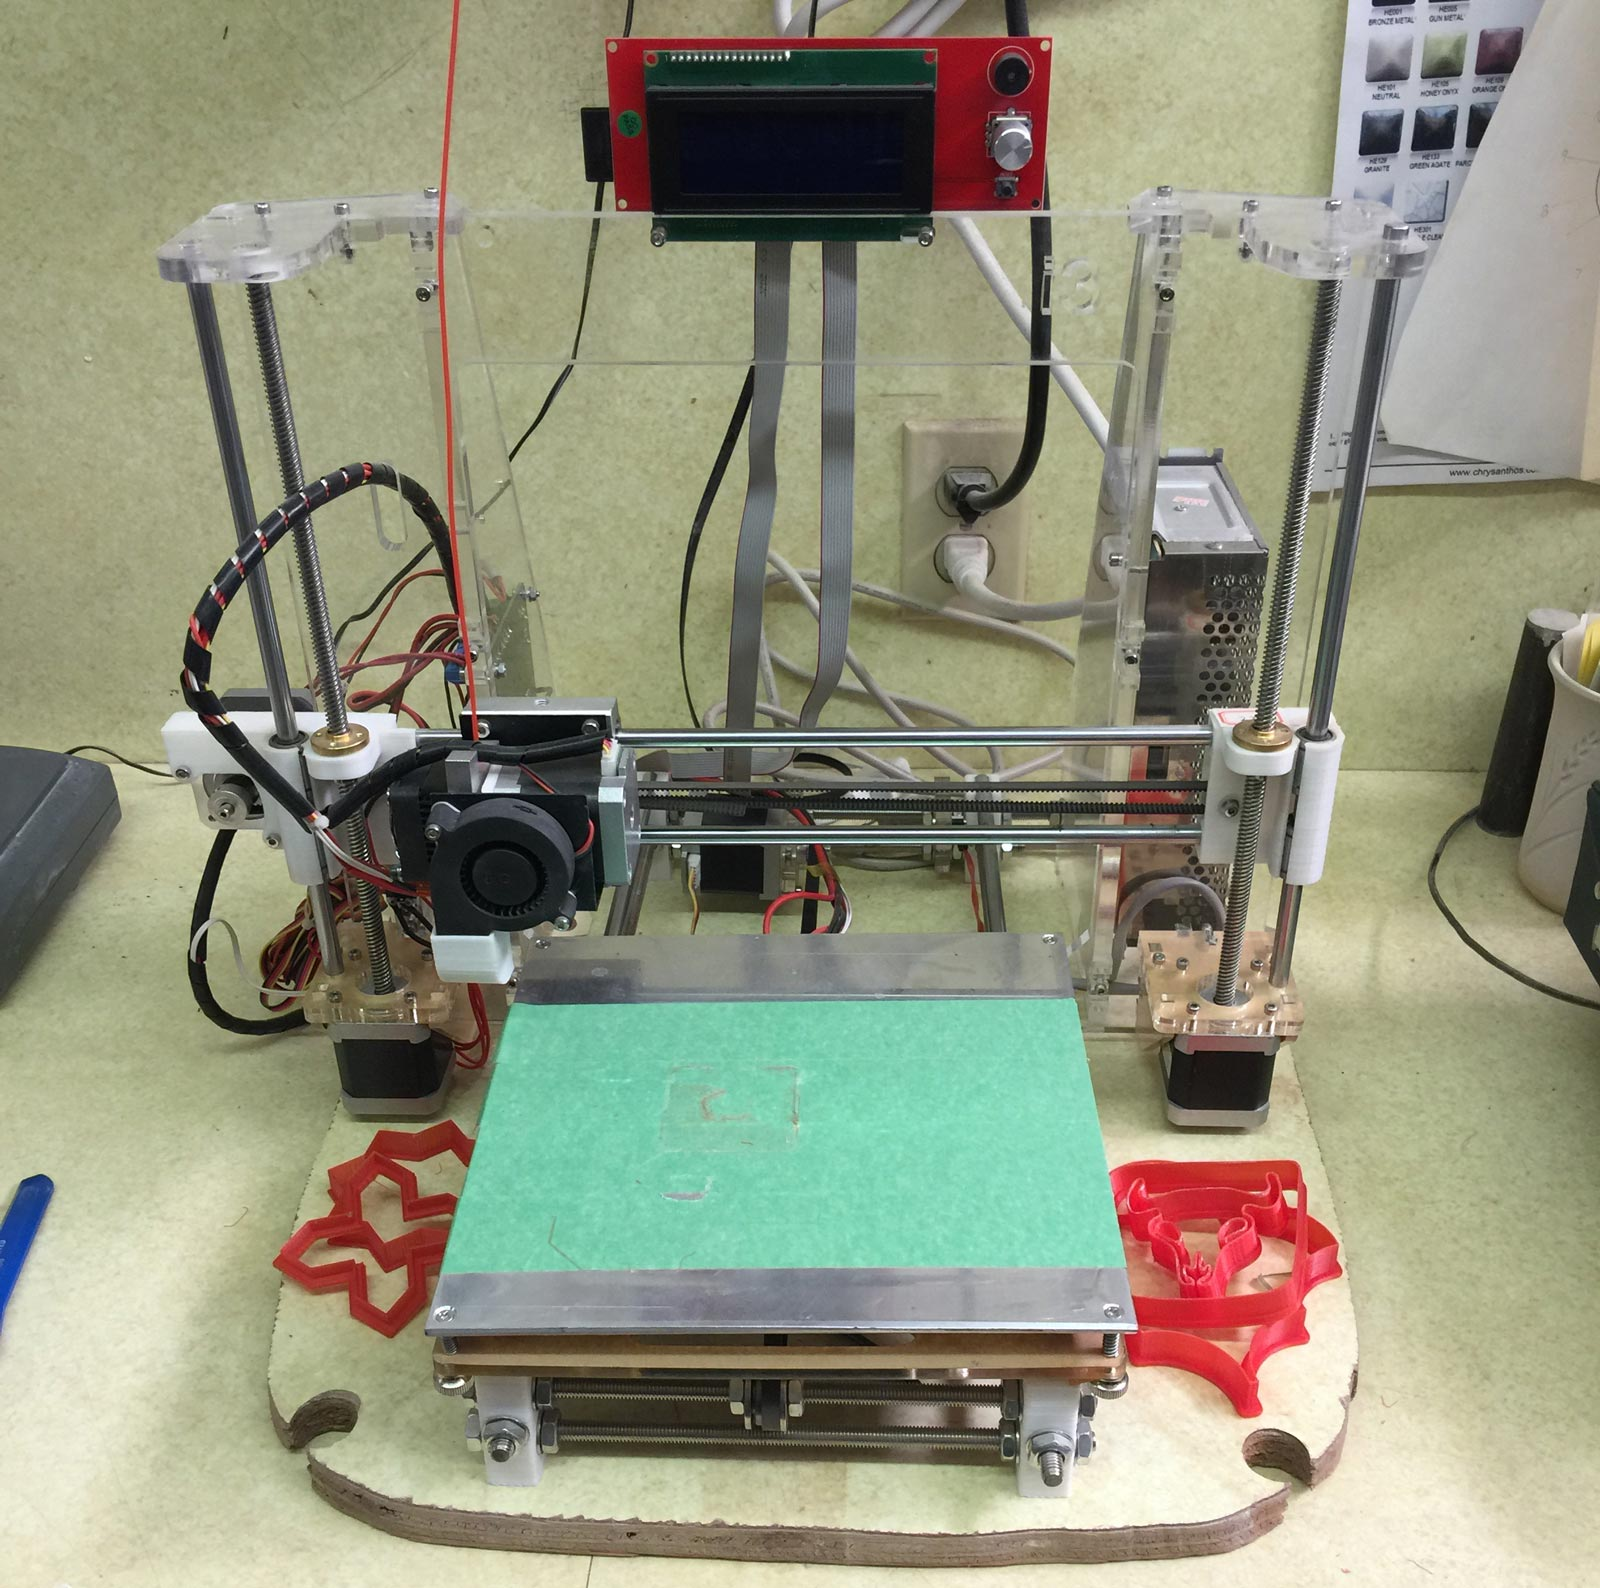 The movable printing bed on a common 3D RepRap printer